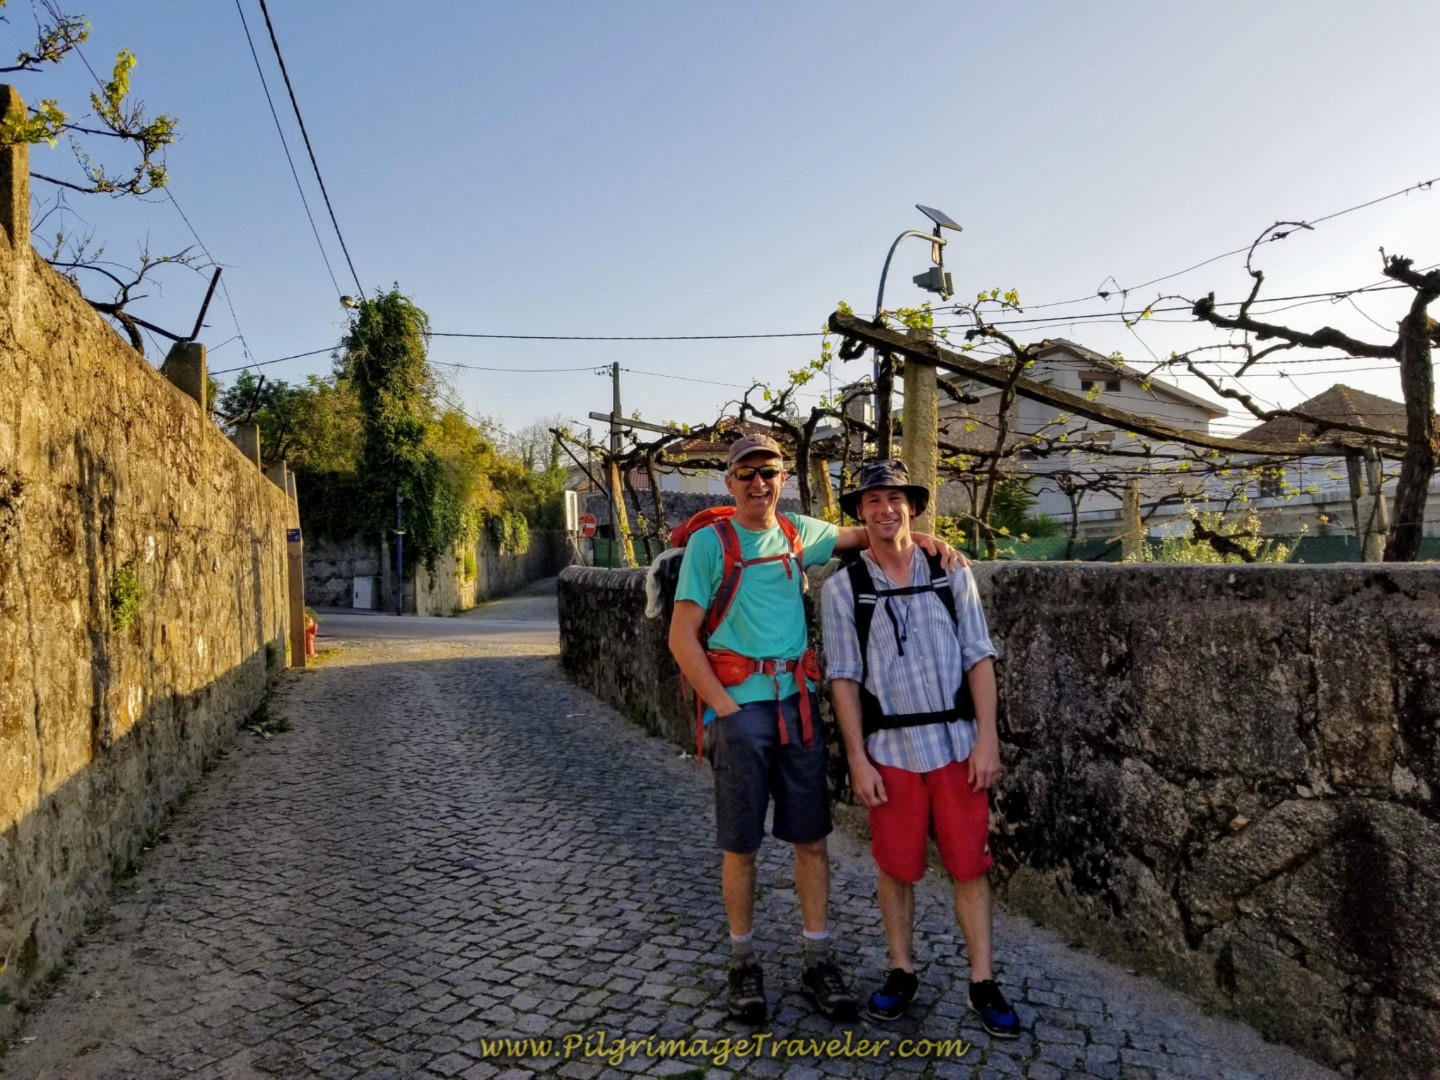 Rich and Matt Upon Entering Vilarinho, Portugal on the Central Route of the Camino Portugués